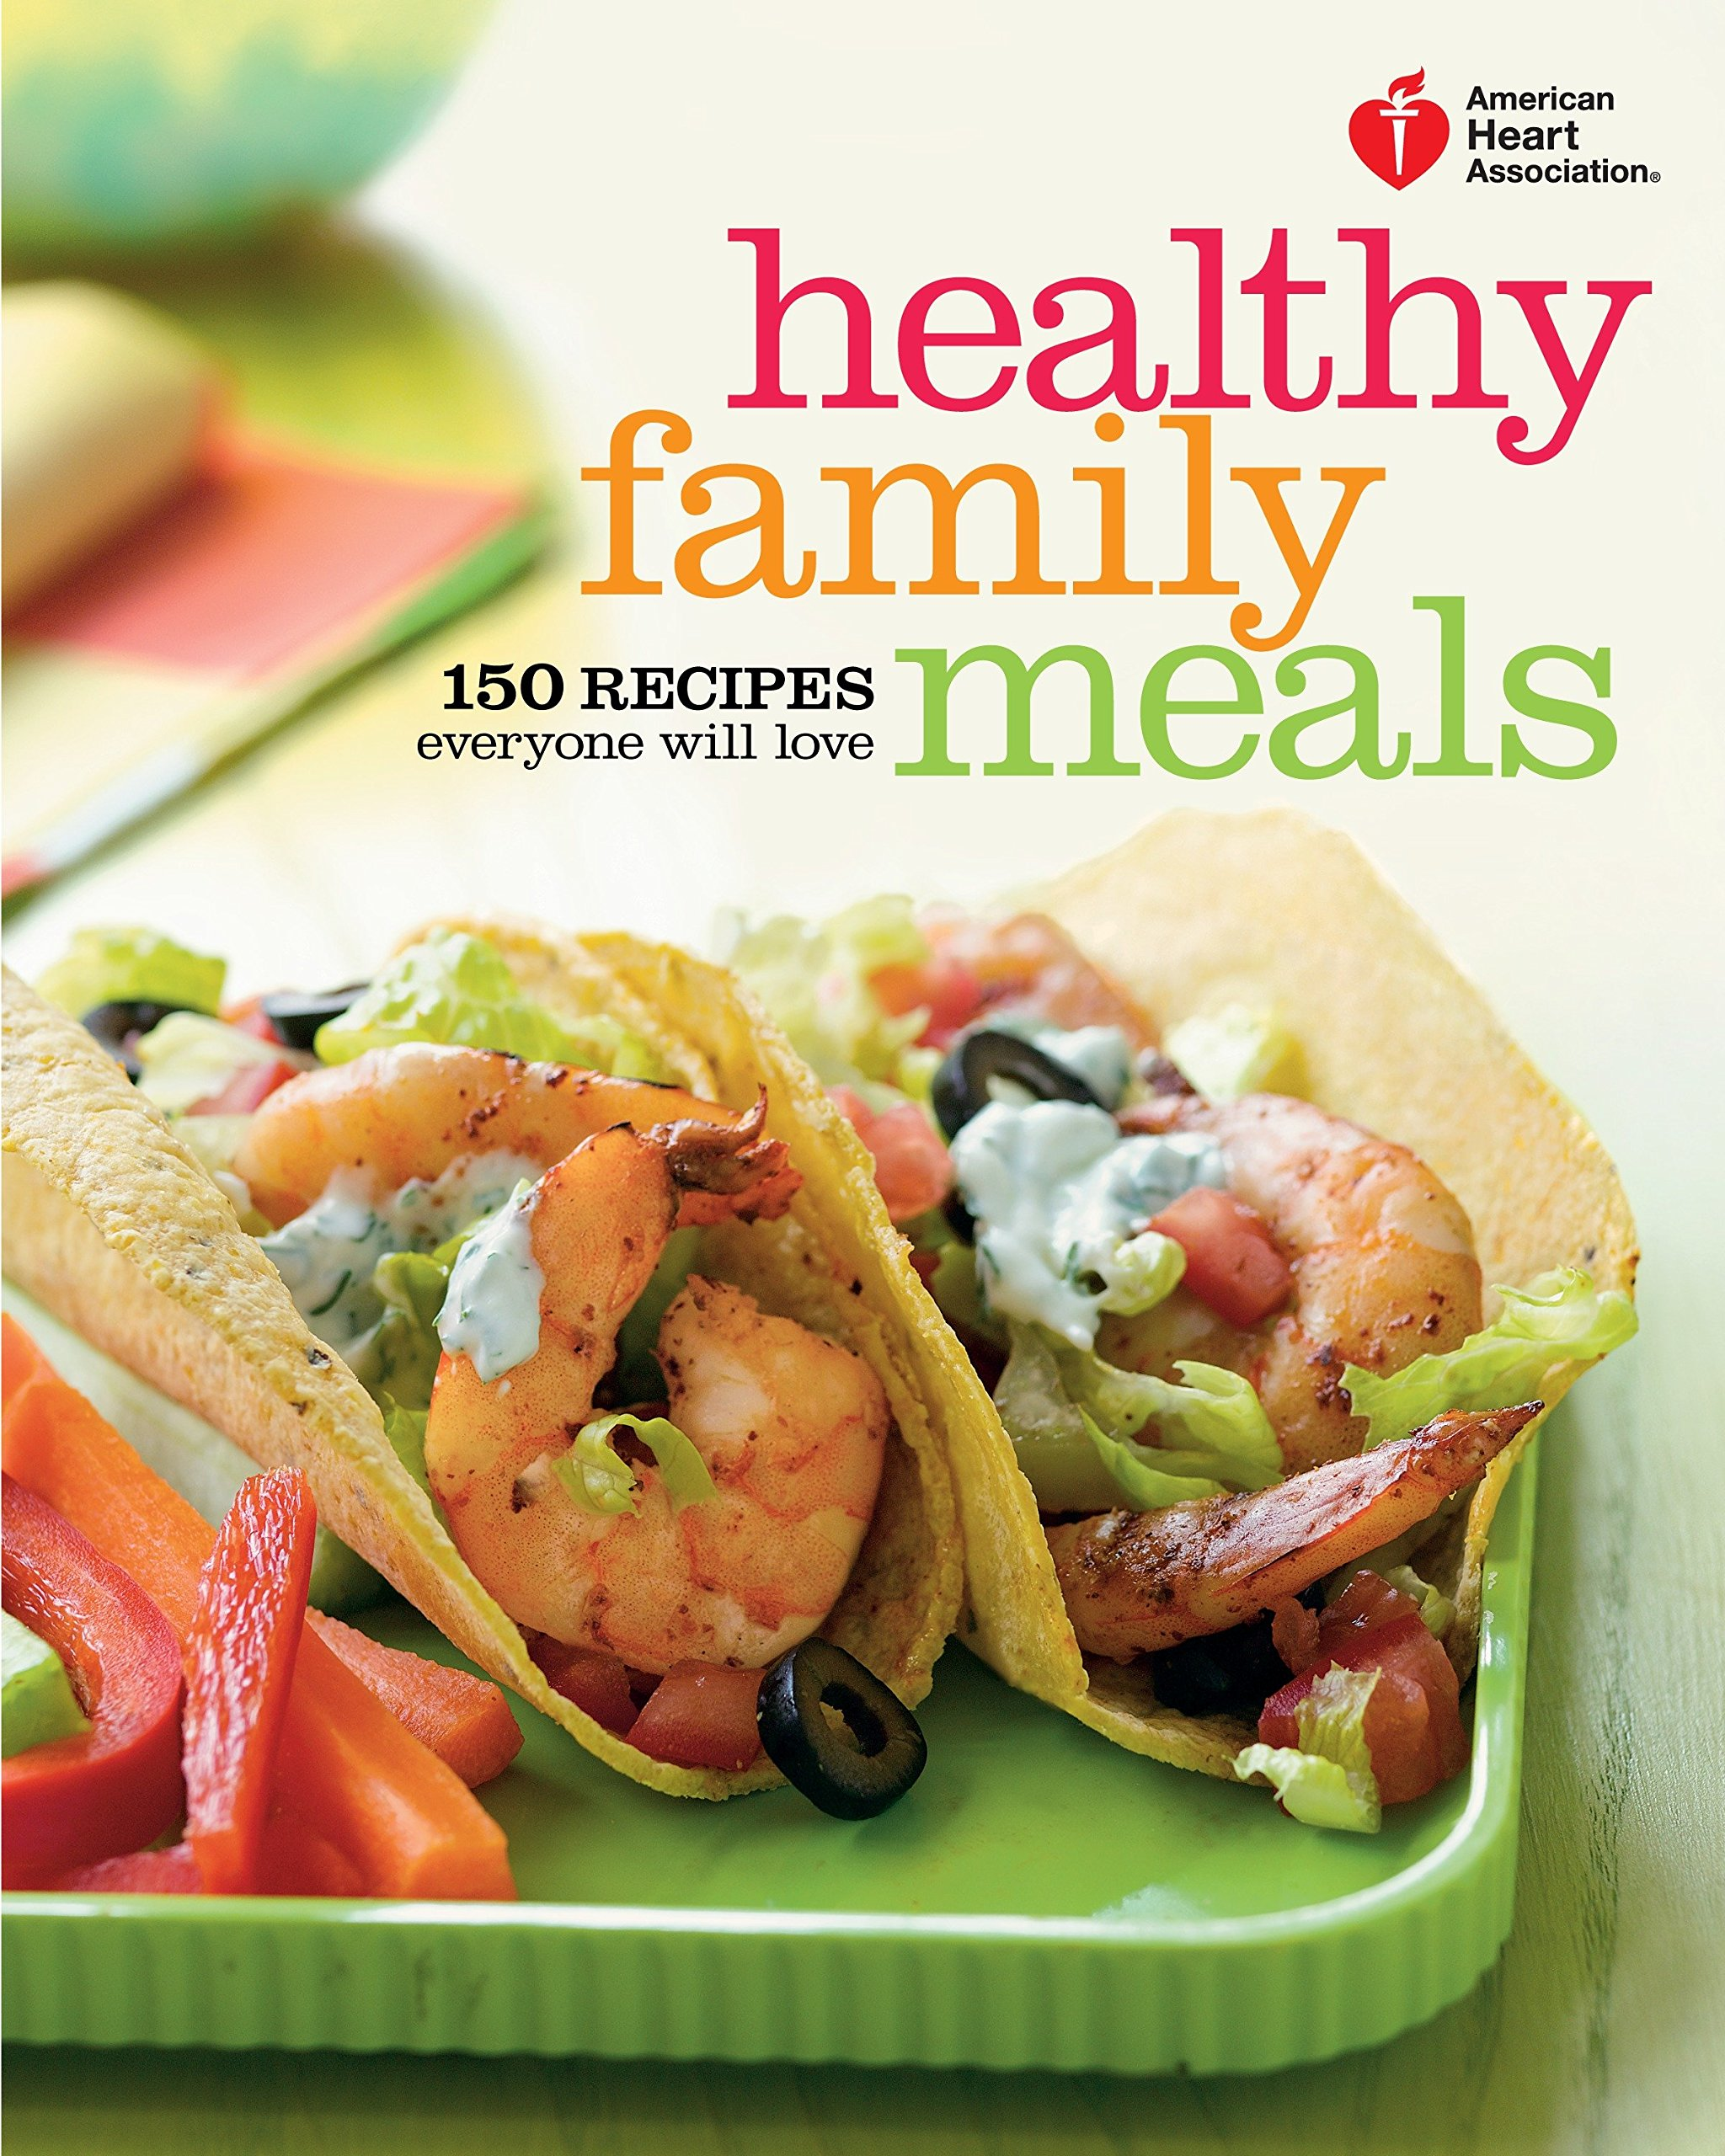 American Heart Association Healthy Family Meals 150 Recipes Everyone Will Love A Cookbook American Heart Association 9780307720627 Amazon Com Books